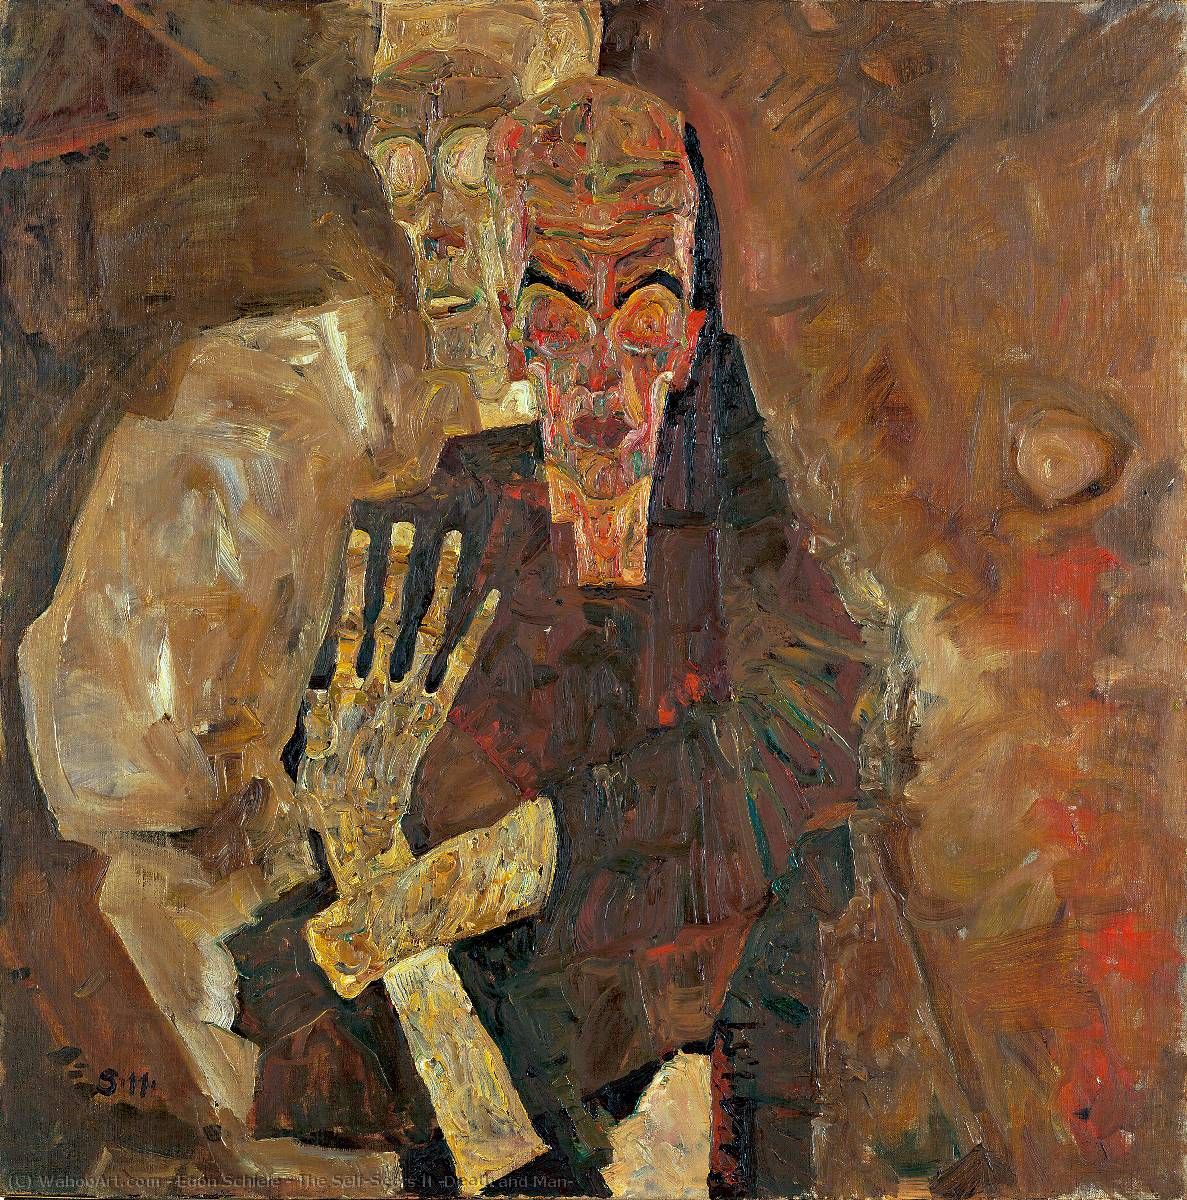 famous painting The Self-Seers II (Death and Man) of Egon Schiele